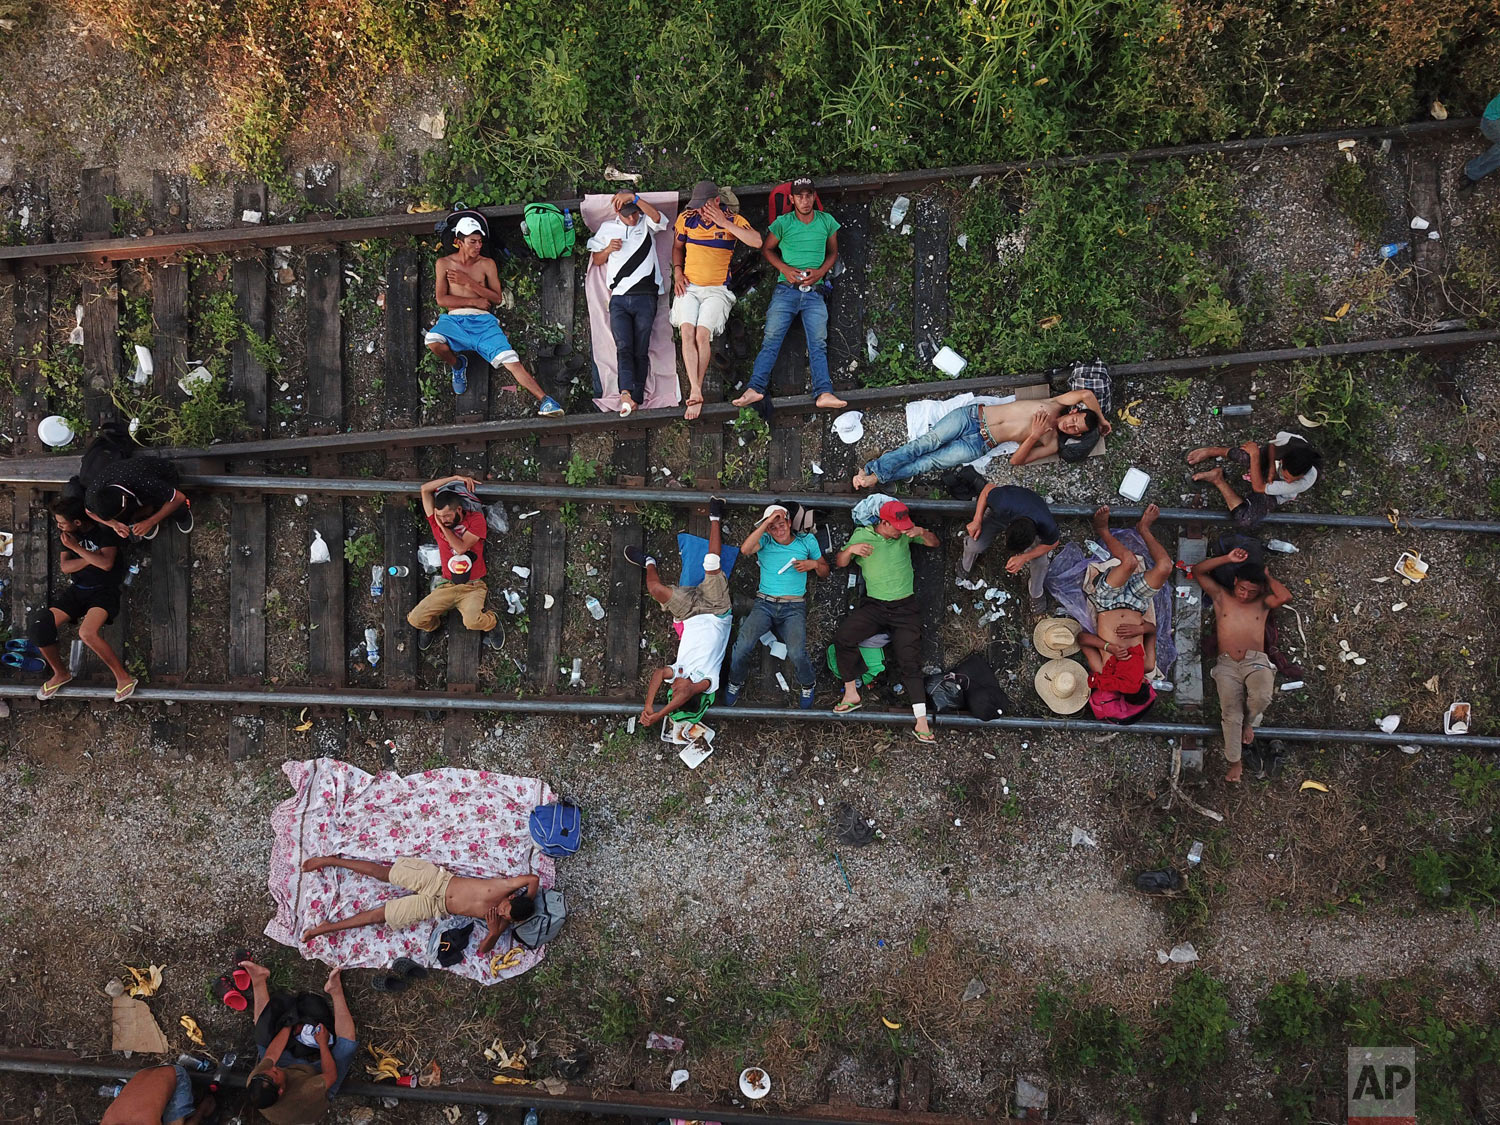 Migrants traveling in a caravan to the U.S. border rest on the railroad tracks in Arriaga, Mexico, Friday, Oct. 26, 2018. Many migrants said they felt safer traveling and sleeping with several thousand strangers in unknown towns rather than hiring a smuggler or trying to make the trip alone. (AP Photo/Rodrigo Abd)